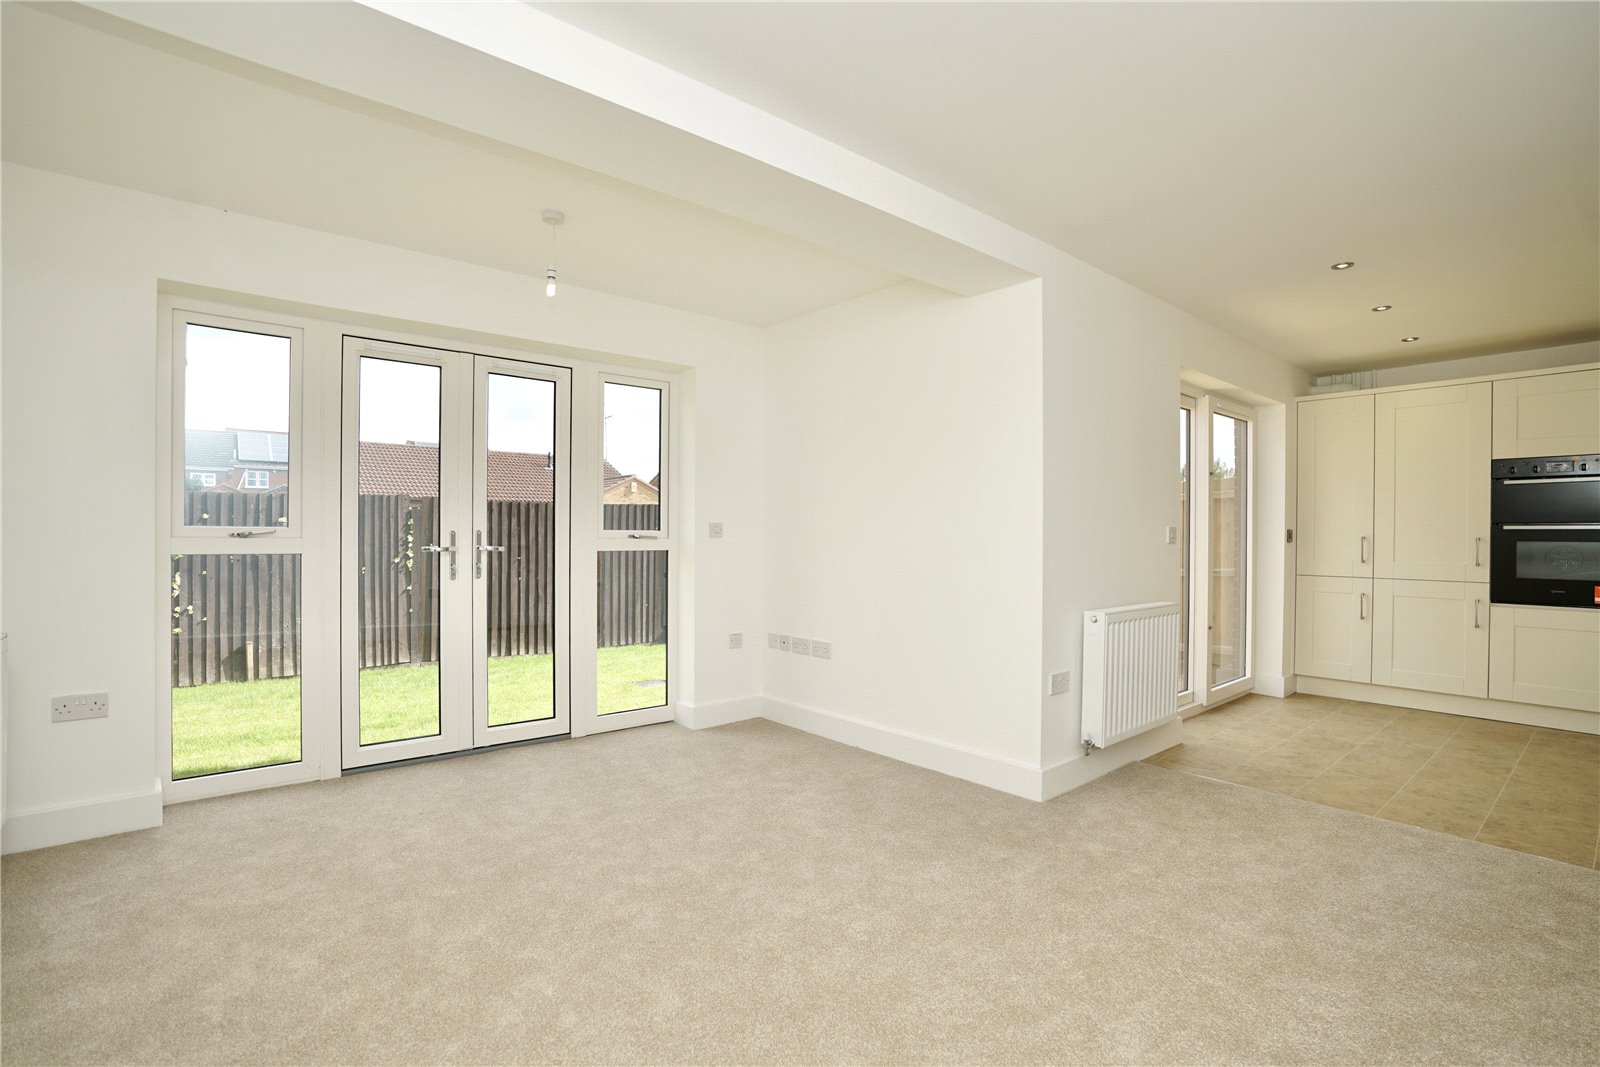 3 bed bungalow for sale in Whittlesey, PE7 1RU 2